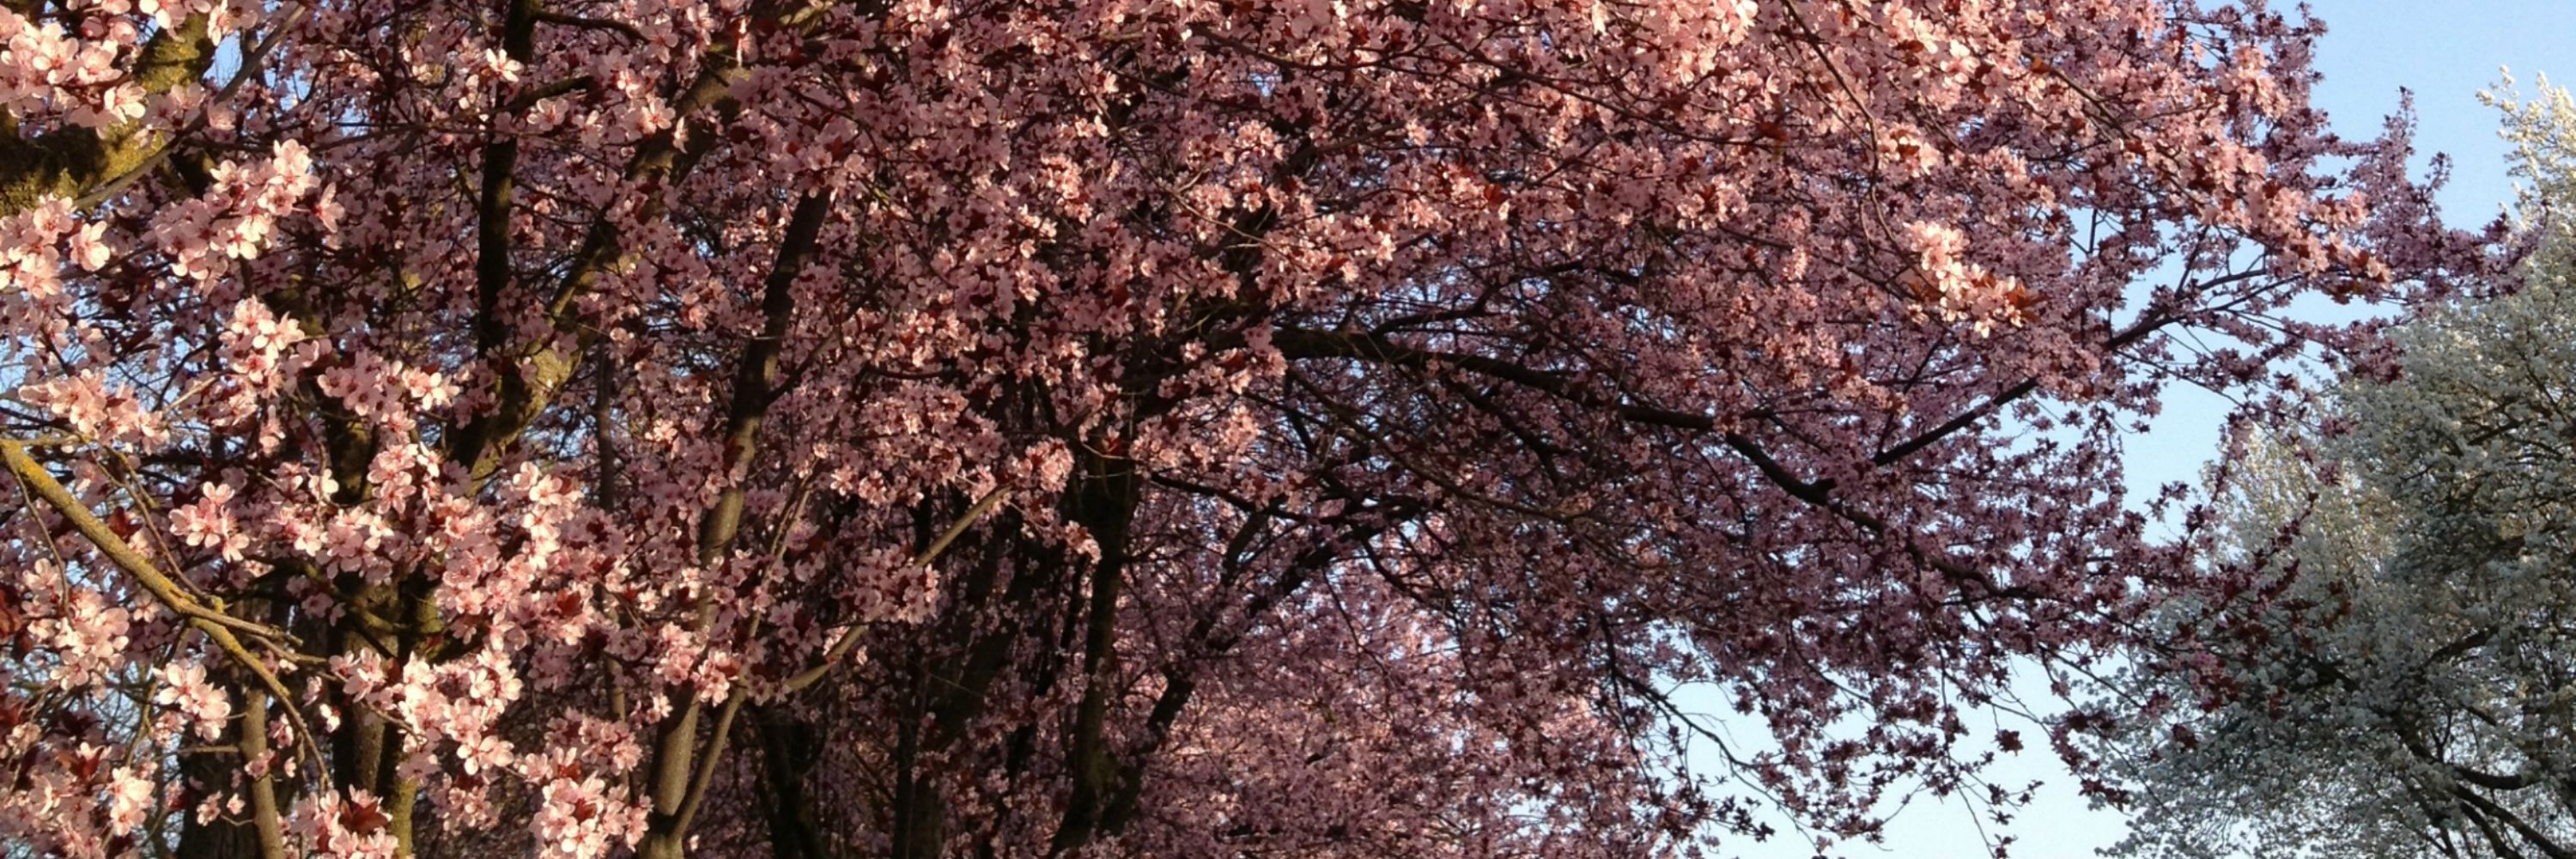 choosing a tree, flowering plum - Anne of Green Gardens